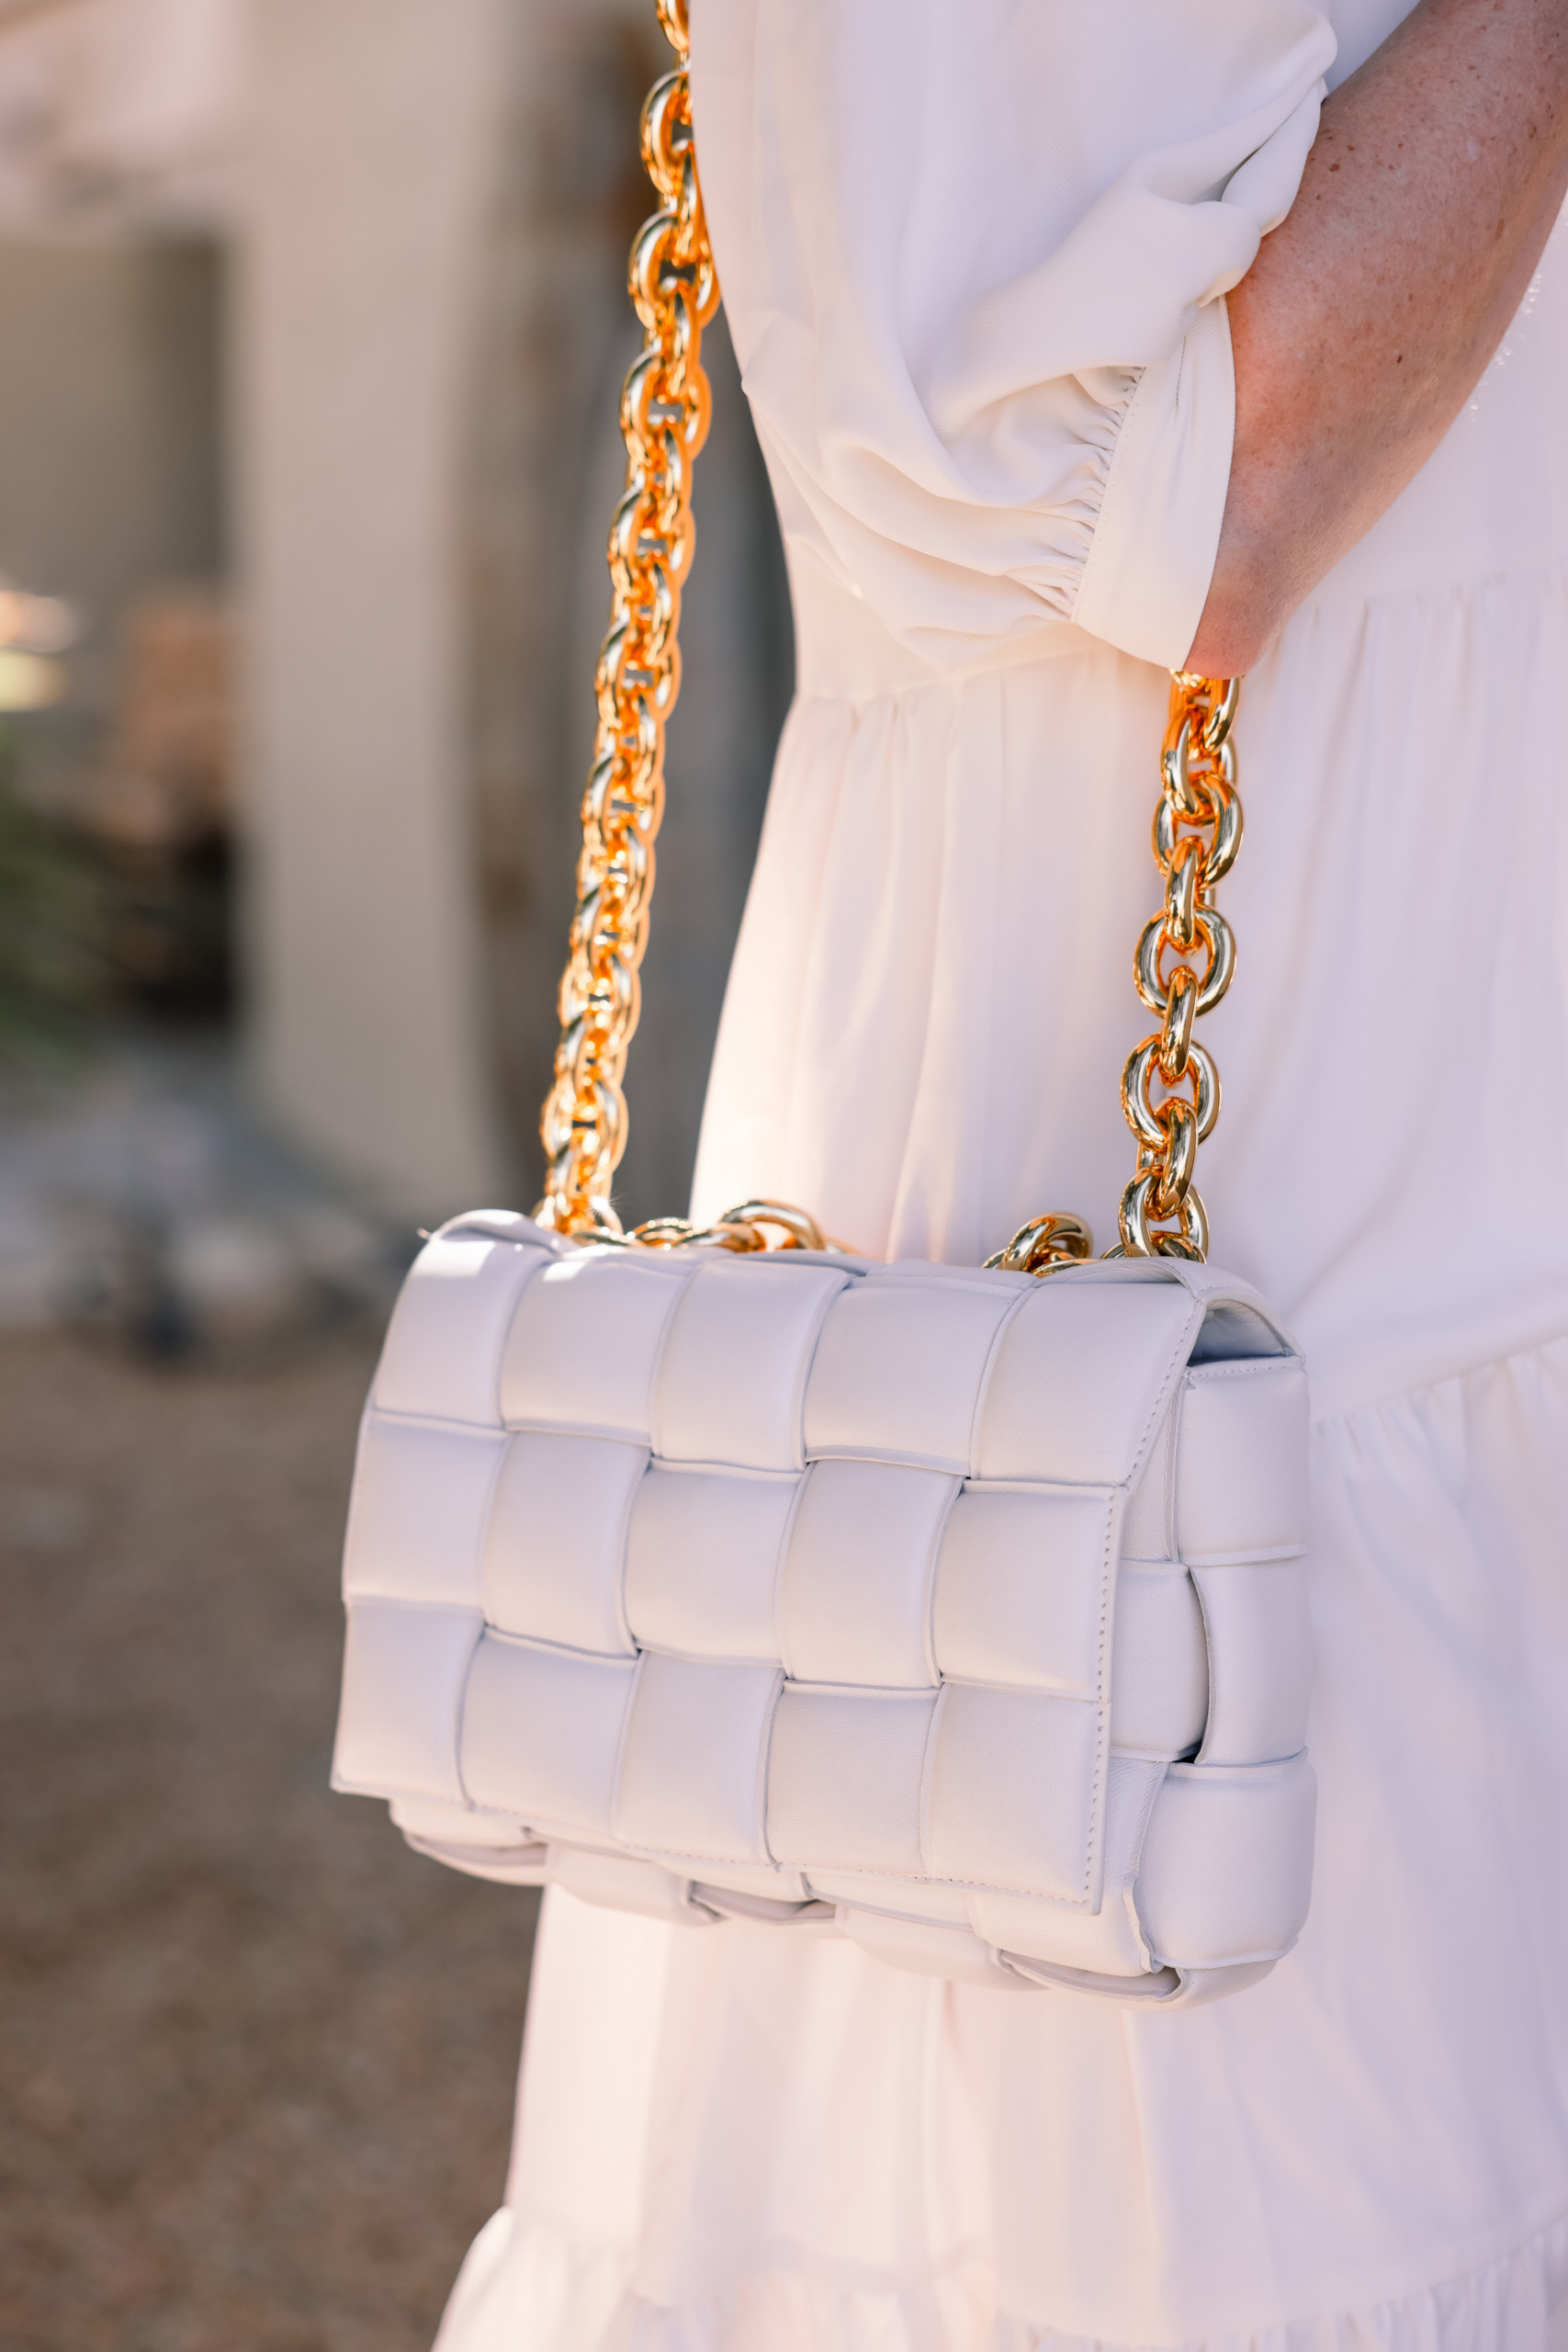 Honest review of Bottega Veneta Cassette Bag in White on fashion blogger over 40 Erin Busbee, perfect outfit formula, perfect summer outfit